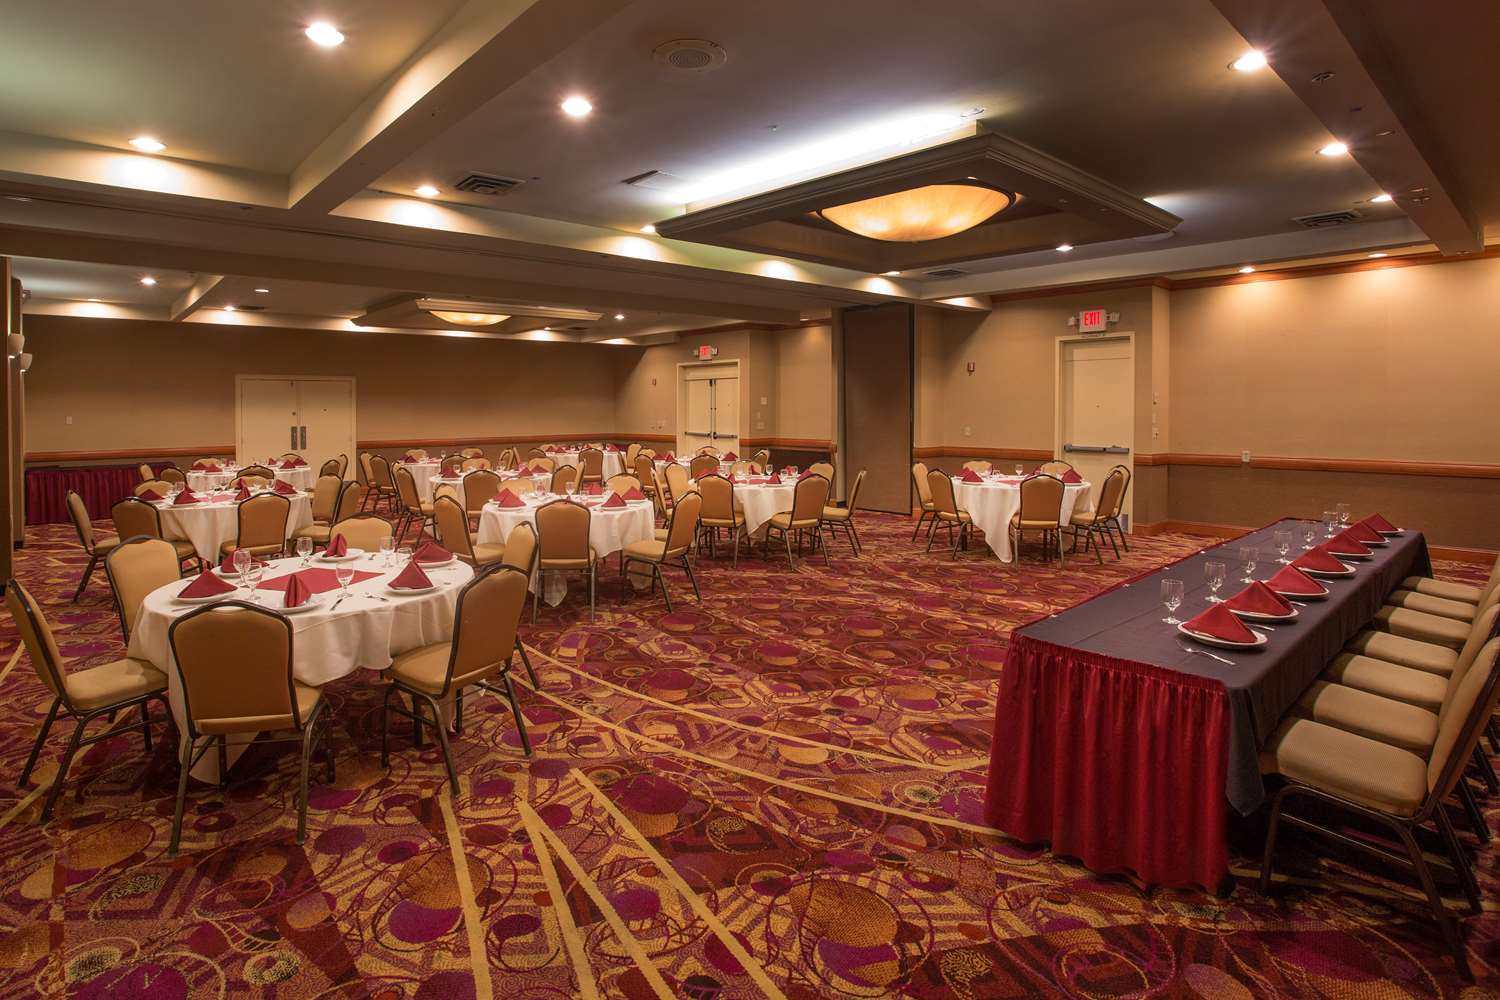 Ballroom - Red Lion Hotel Renton